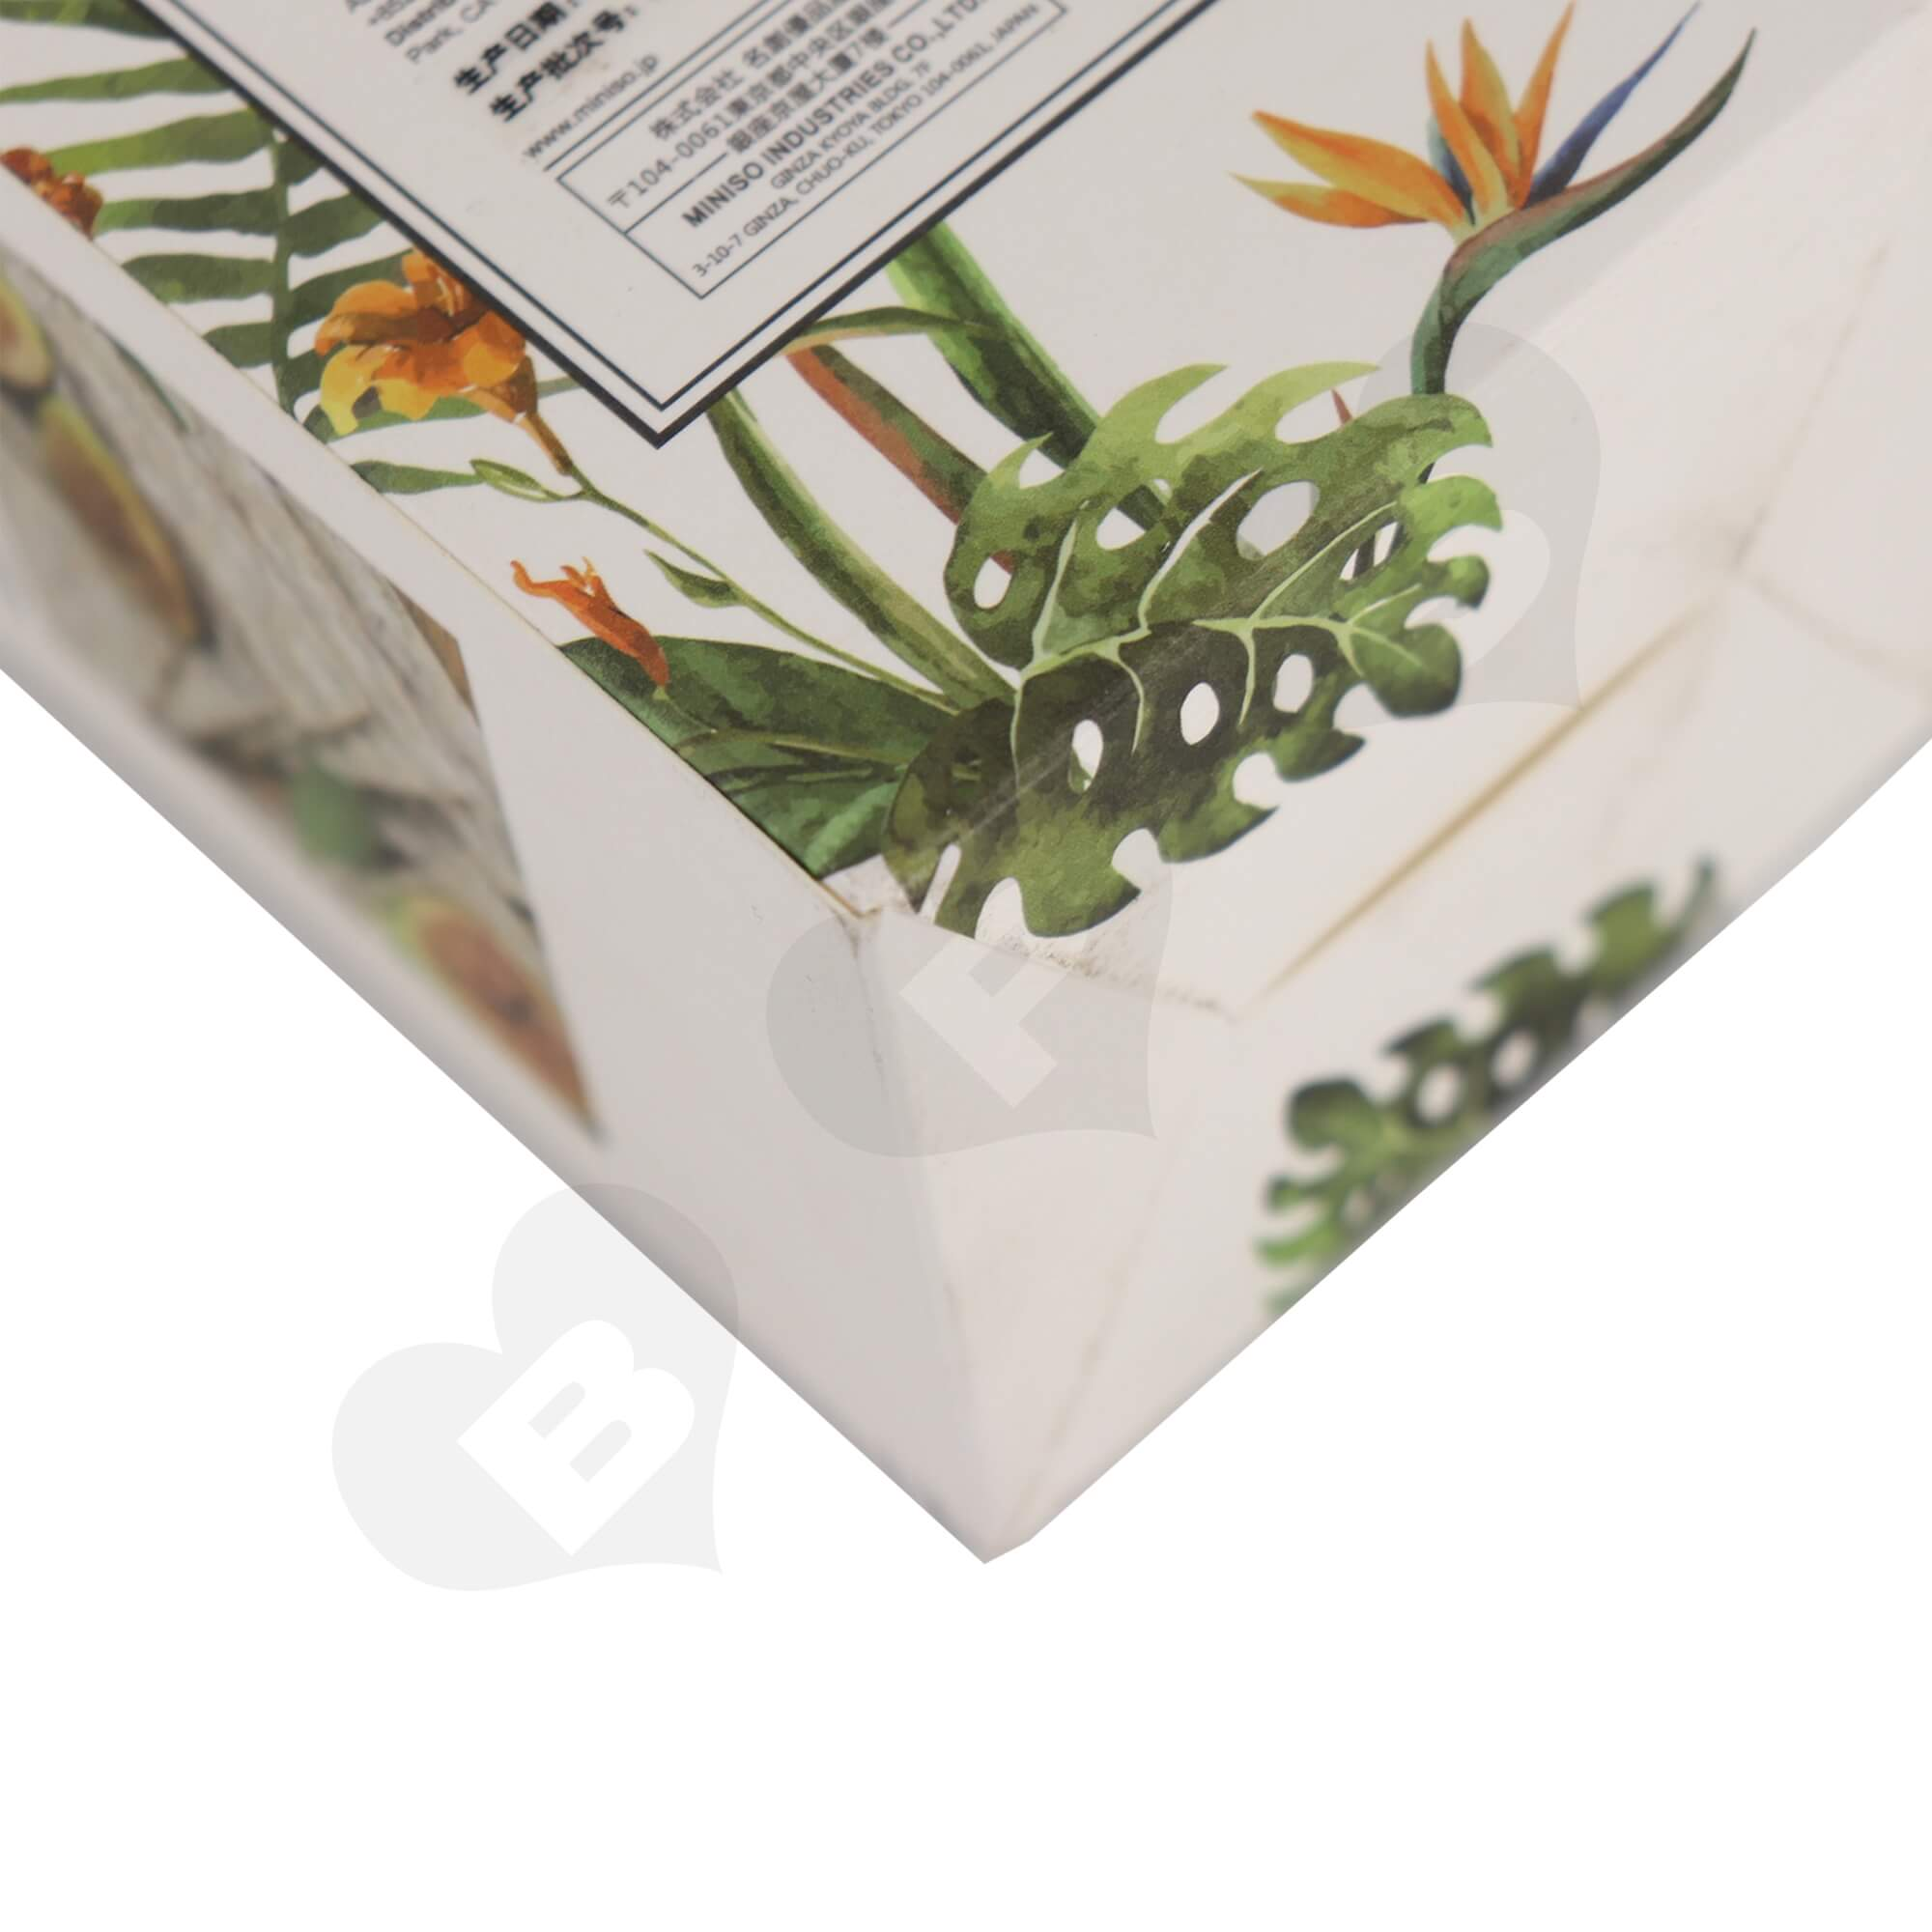 Cardboard Folding Carton For Packing Scent Diffuser With Testing Valve Side View Five